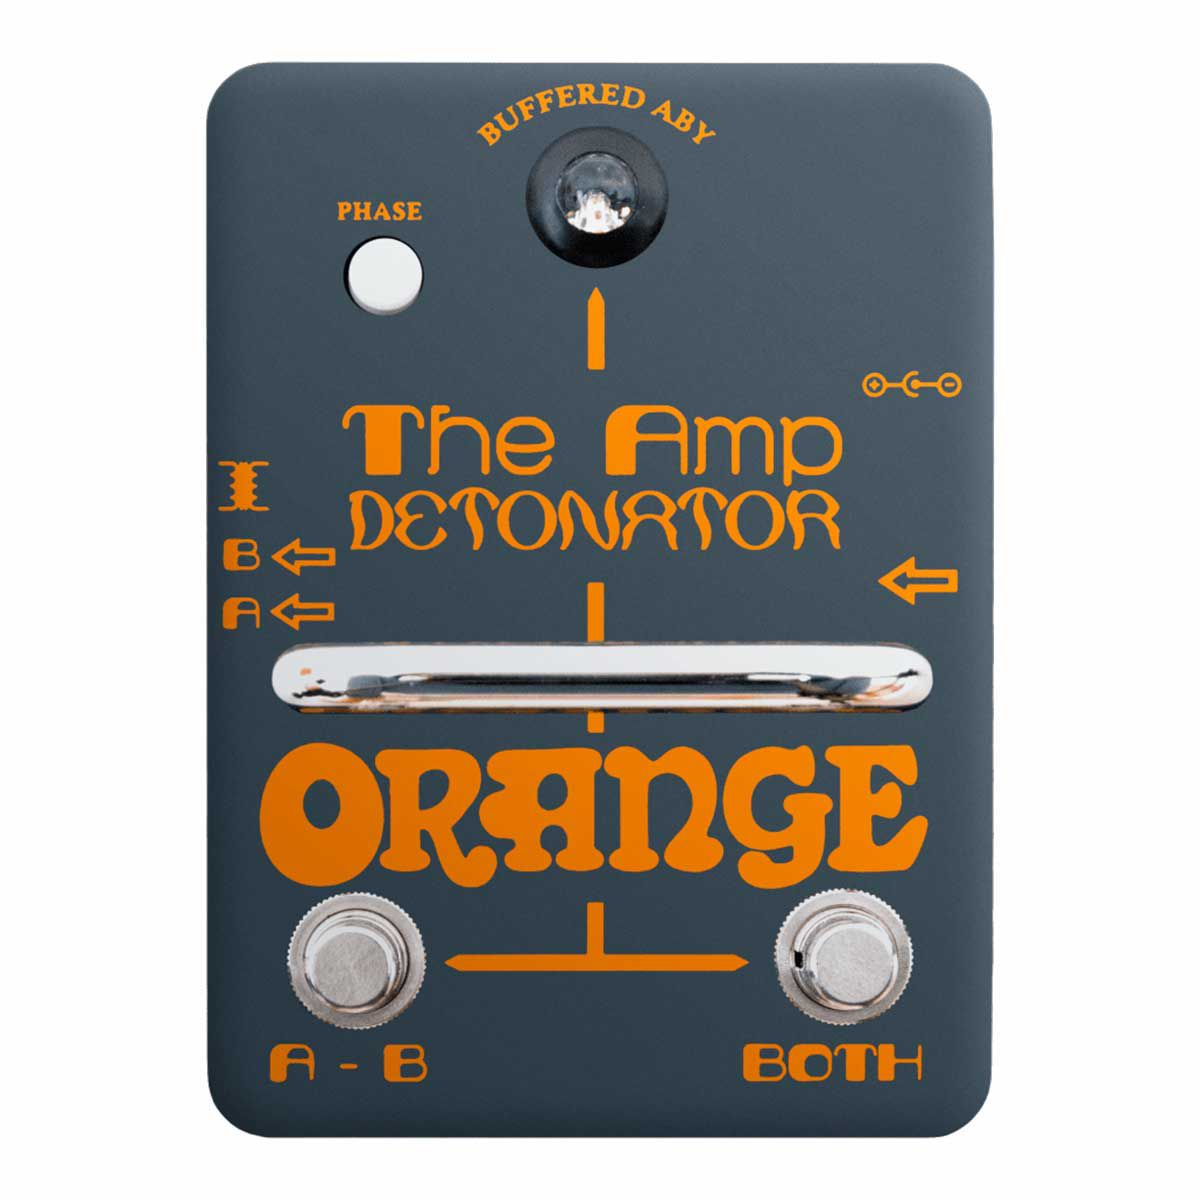 Pedal Orange Switch Amp Detonator Buffered ABY